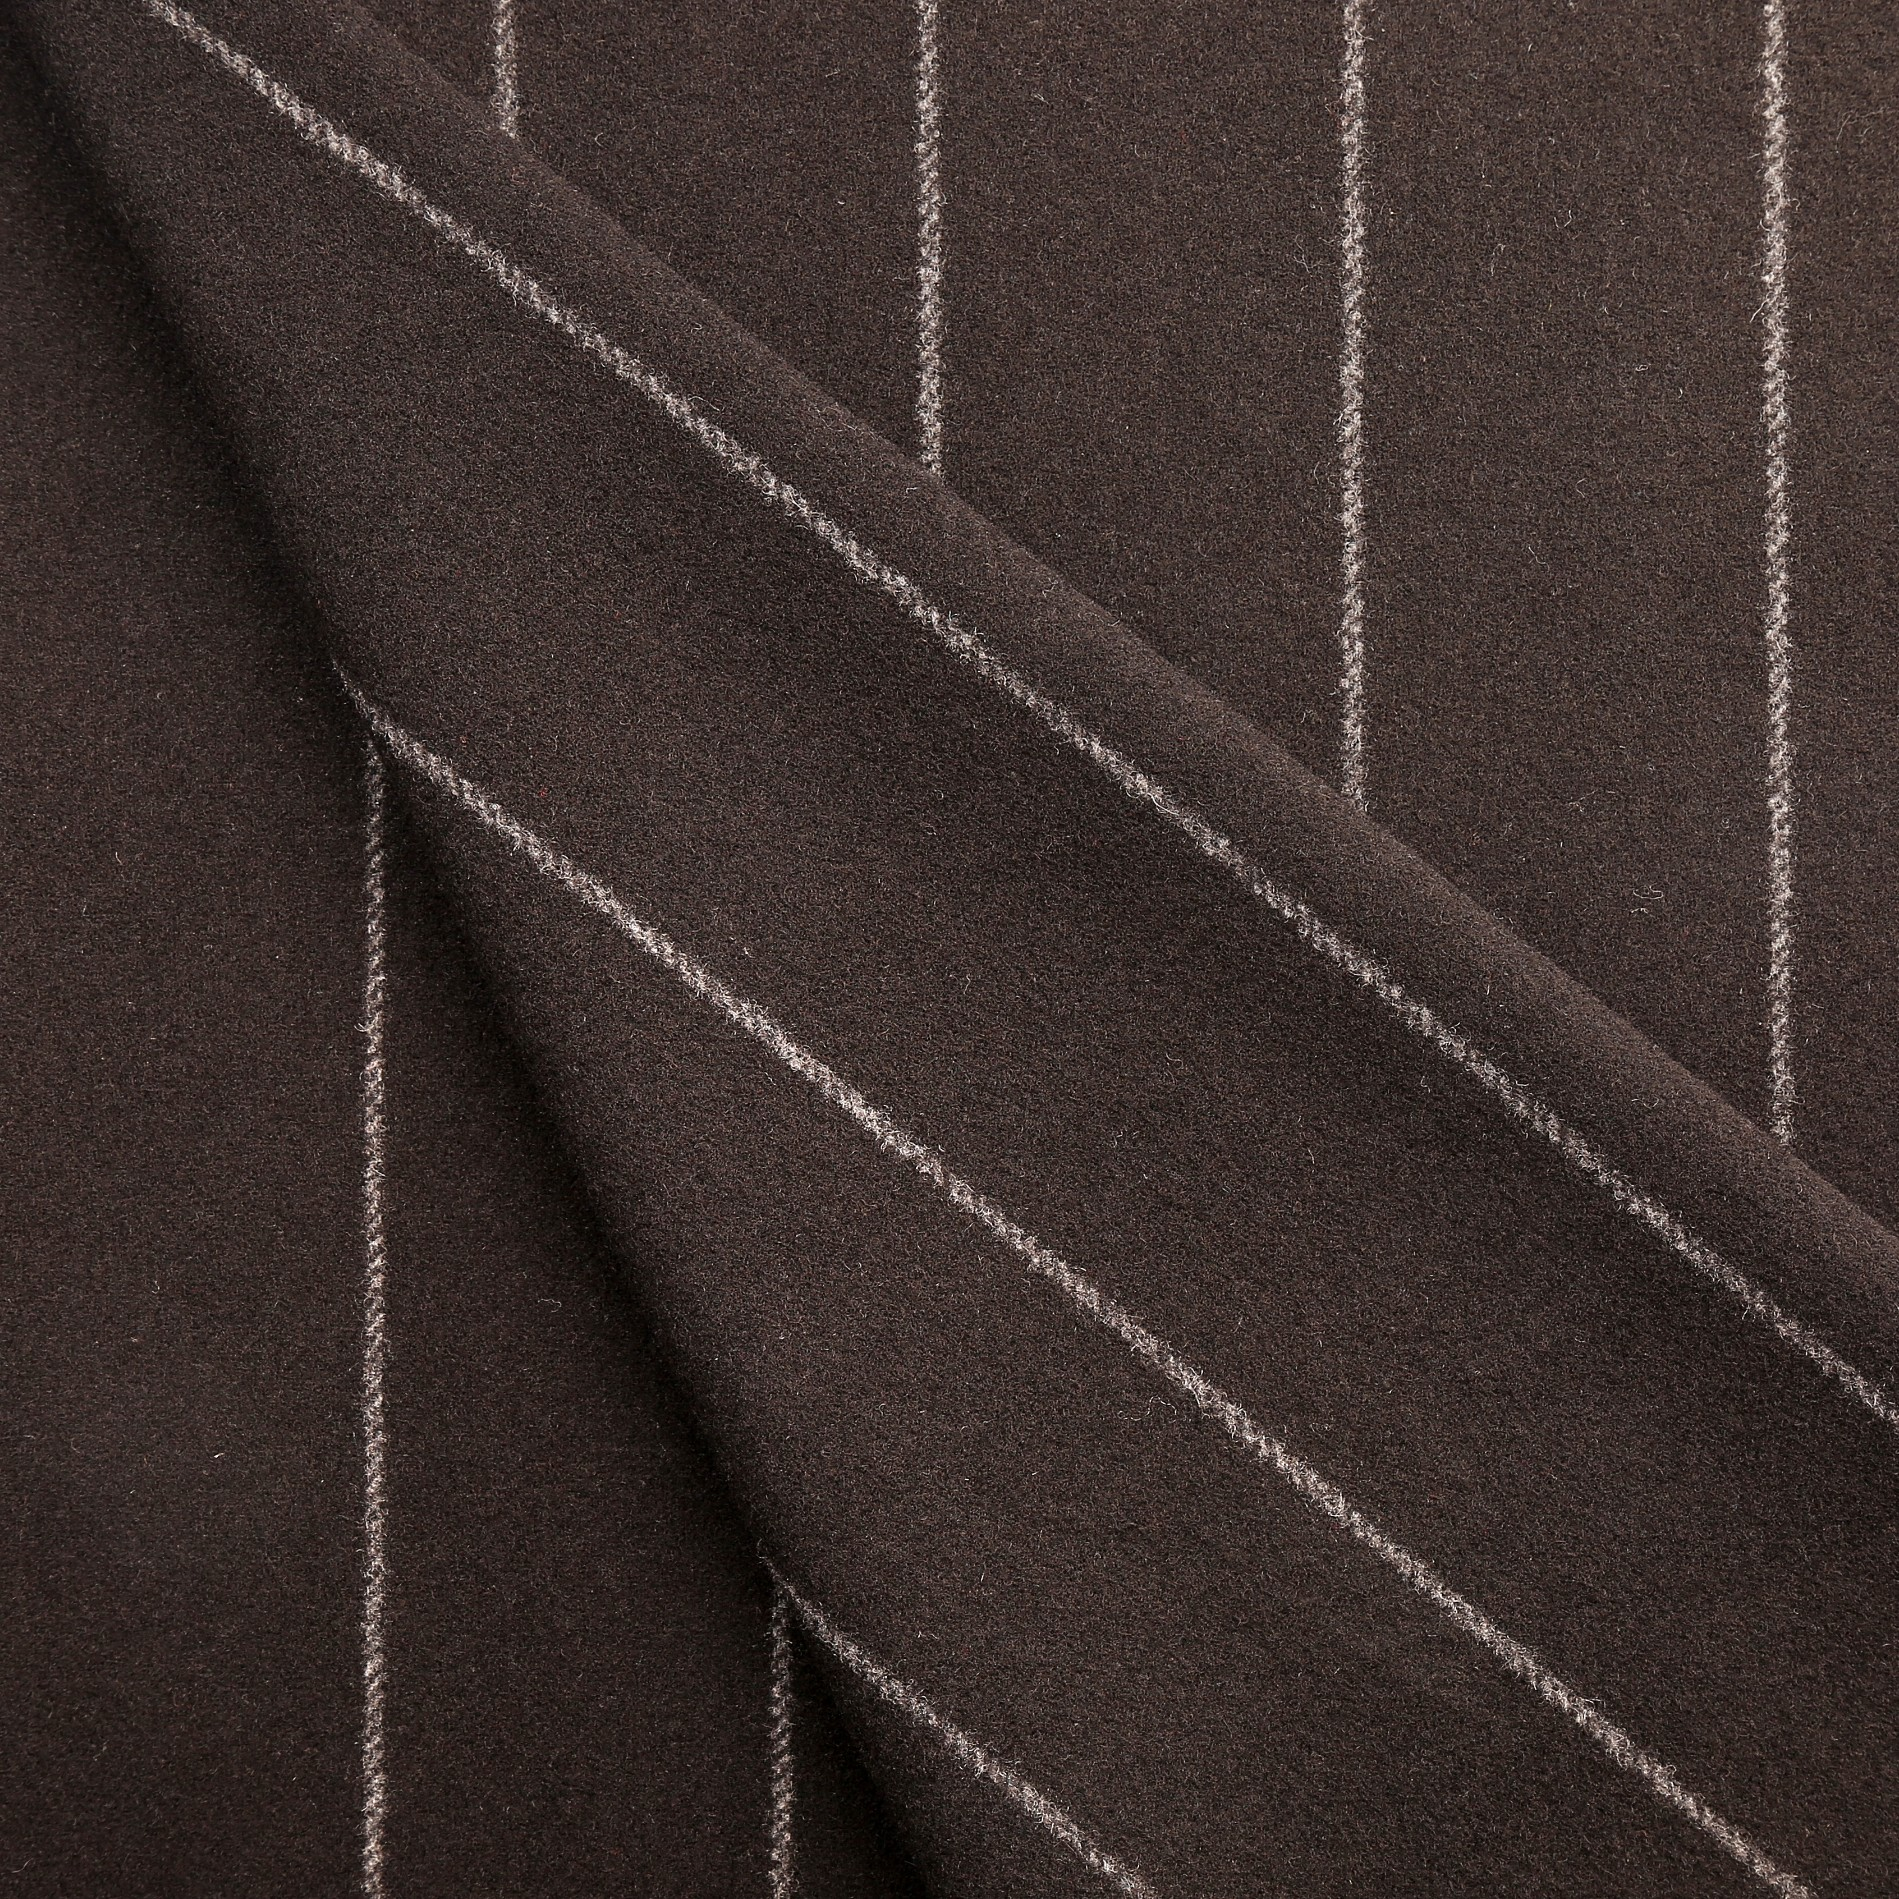 Twilled Worsted Cloth Fabric